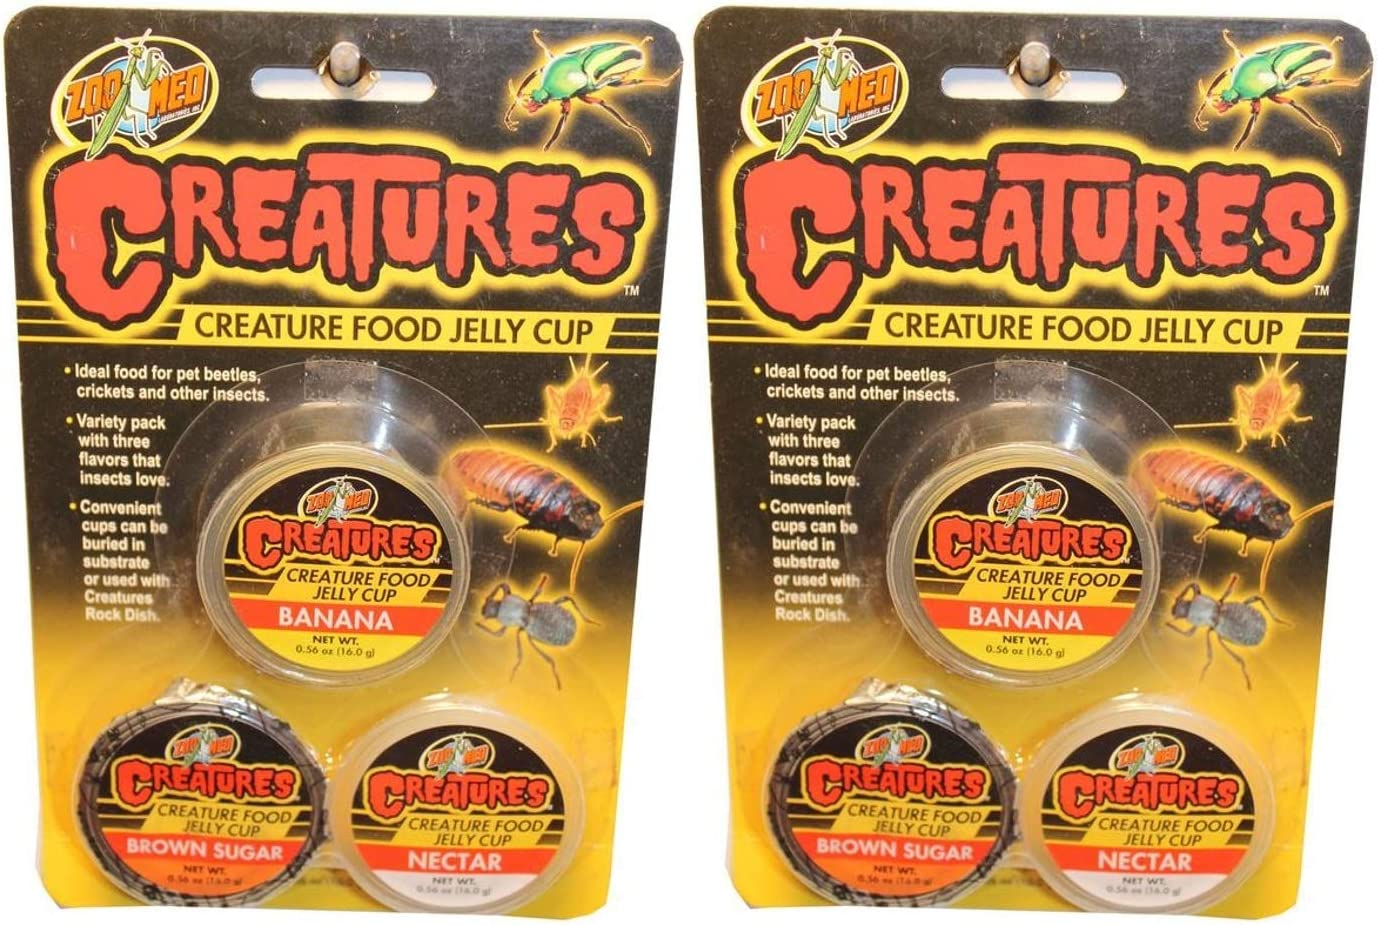 Zoo Med Creatures 2 Pack of Creature Food Jelly Cups, 3 Cups Per Pack